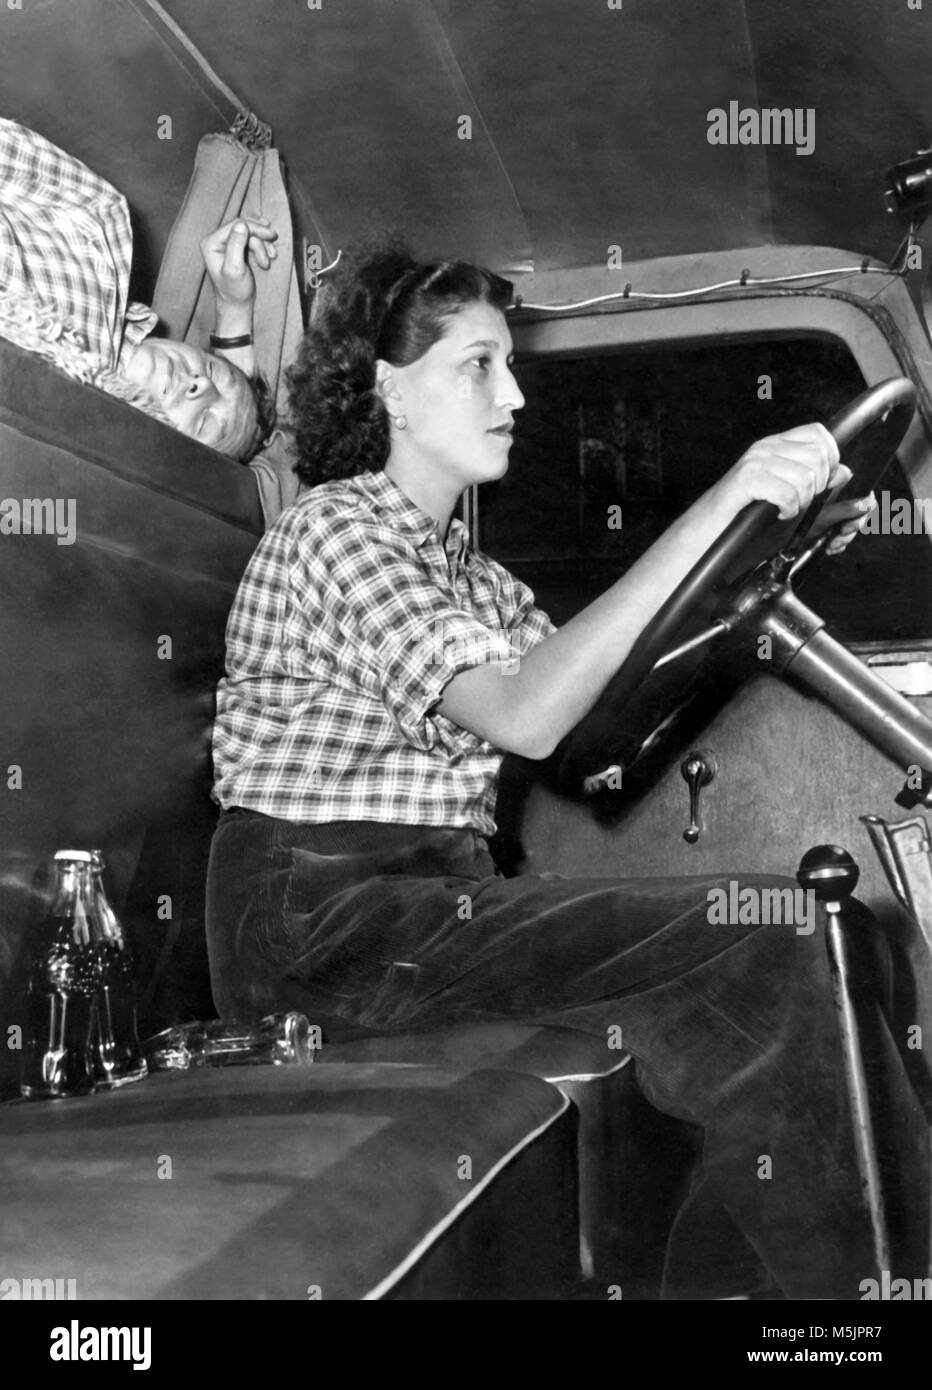 1950s Truck Stock Photos Amp 1950s Truck Stock Images Alamy